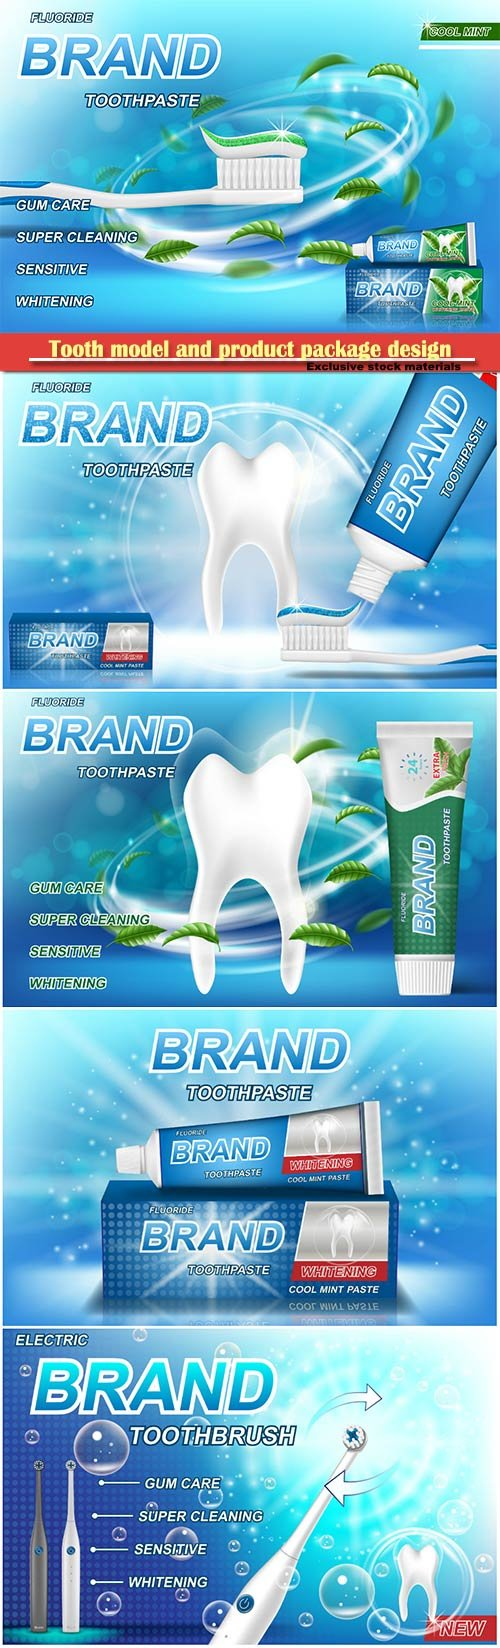 Tooth model and product package design for toothpaste poster or advertising